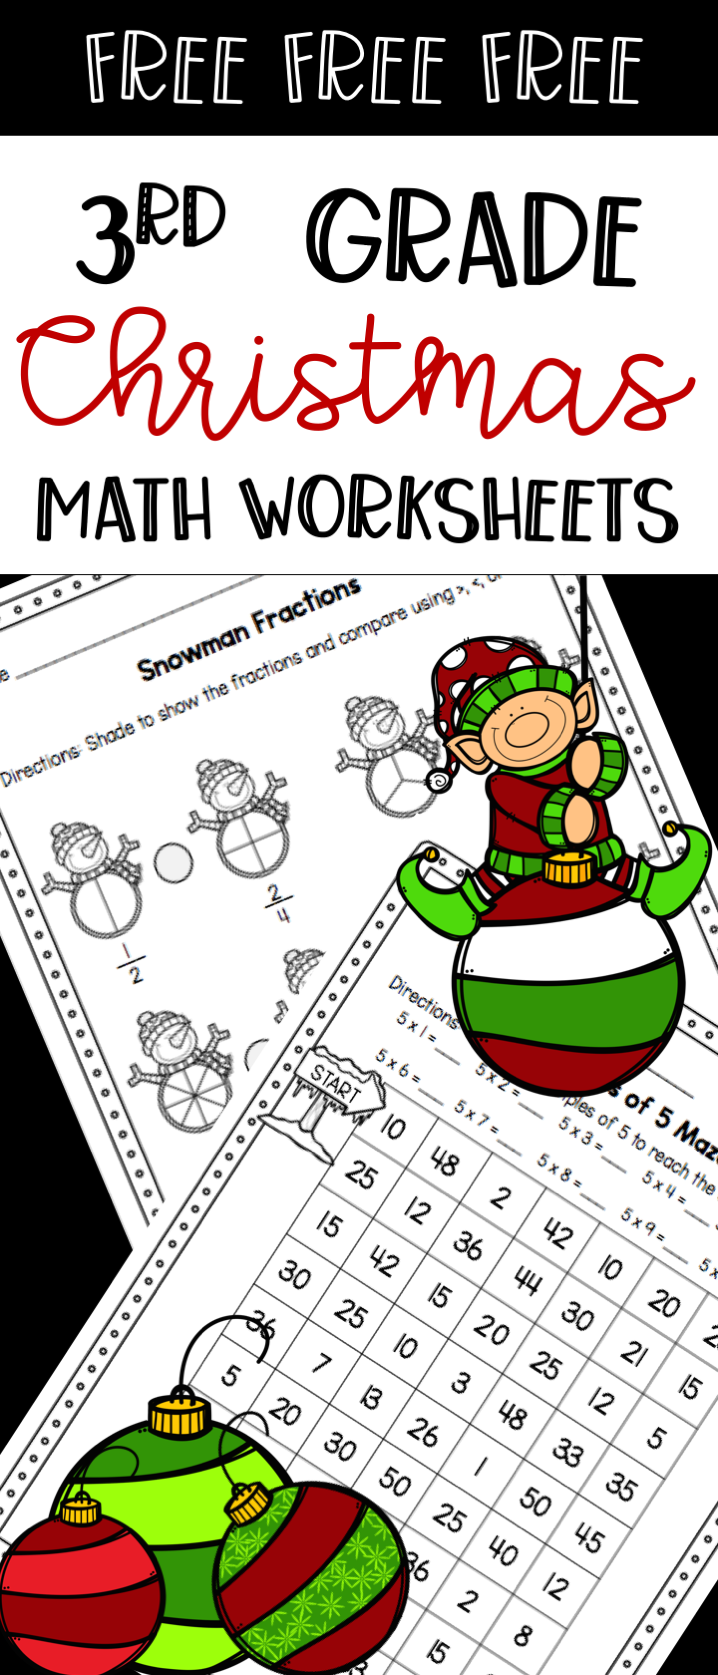 Free 3rd Grade Christmas Math Worksheets Comparing Fractions And Multiplication Products Of 5 Christmas Math Worksheets Christmas Math Christmas Worksheets